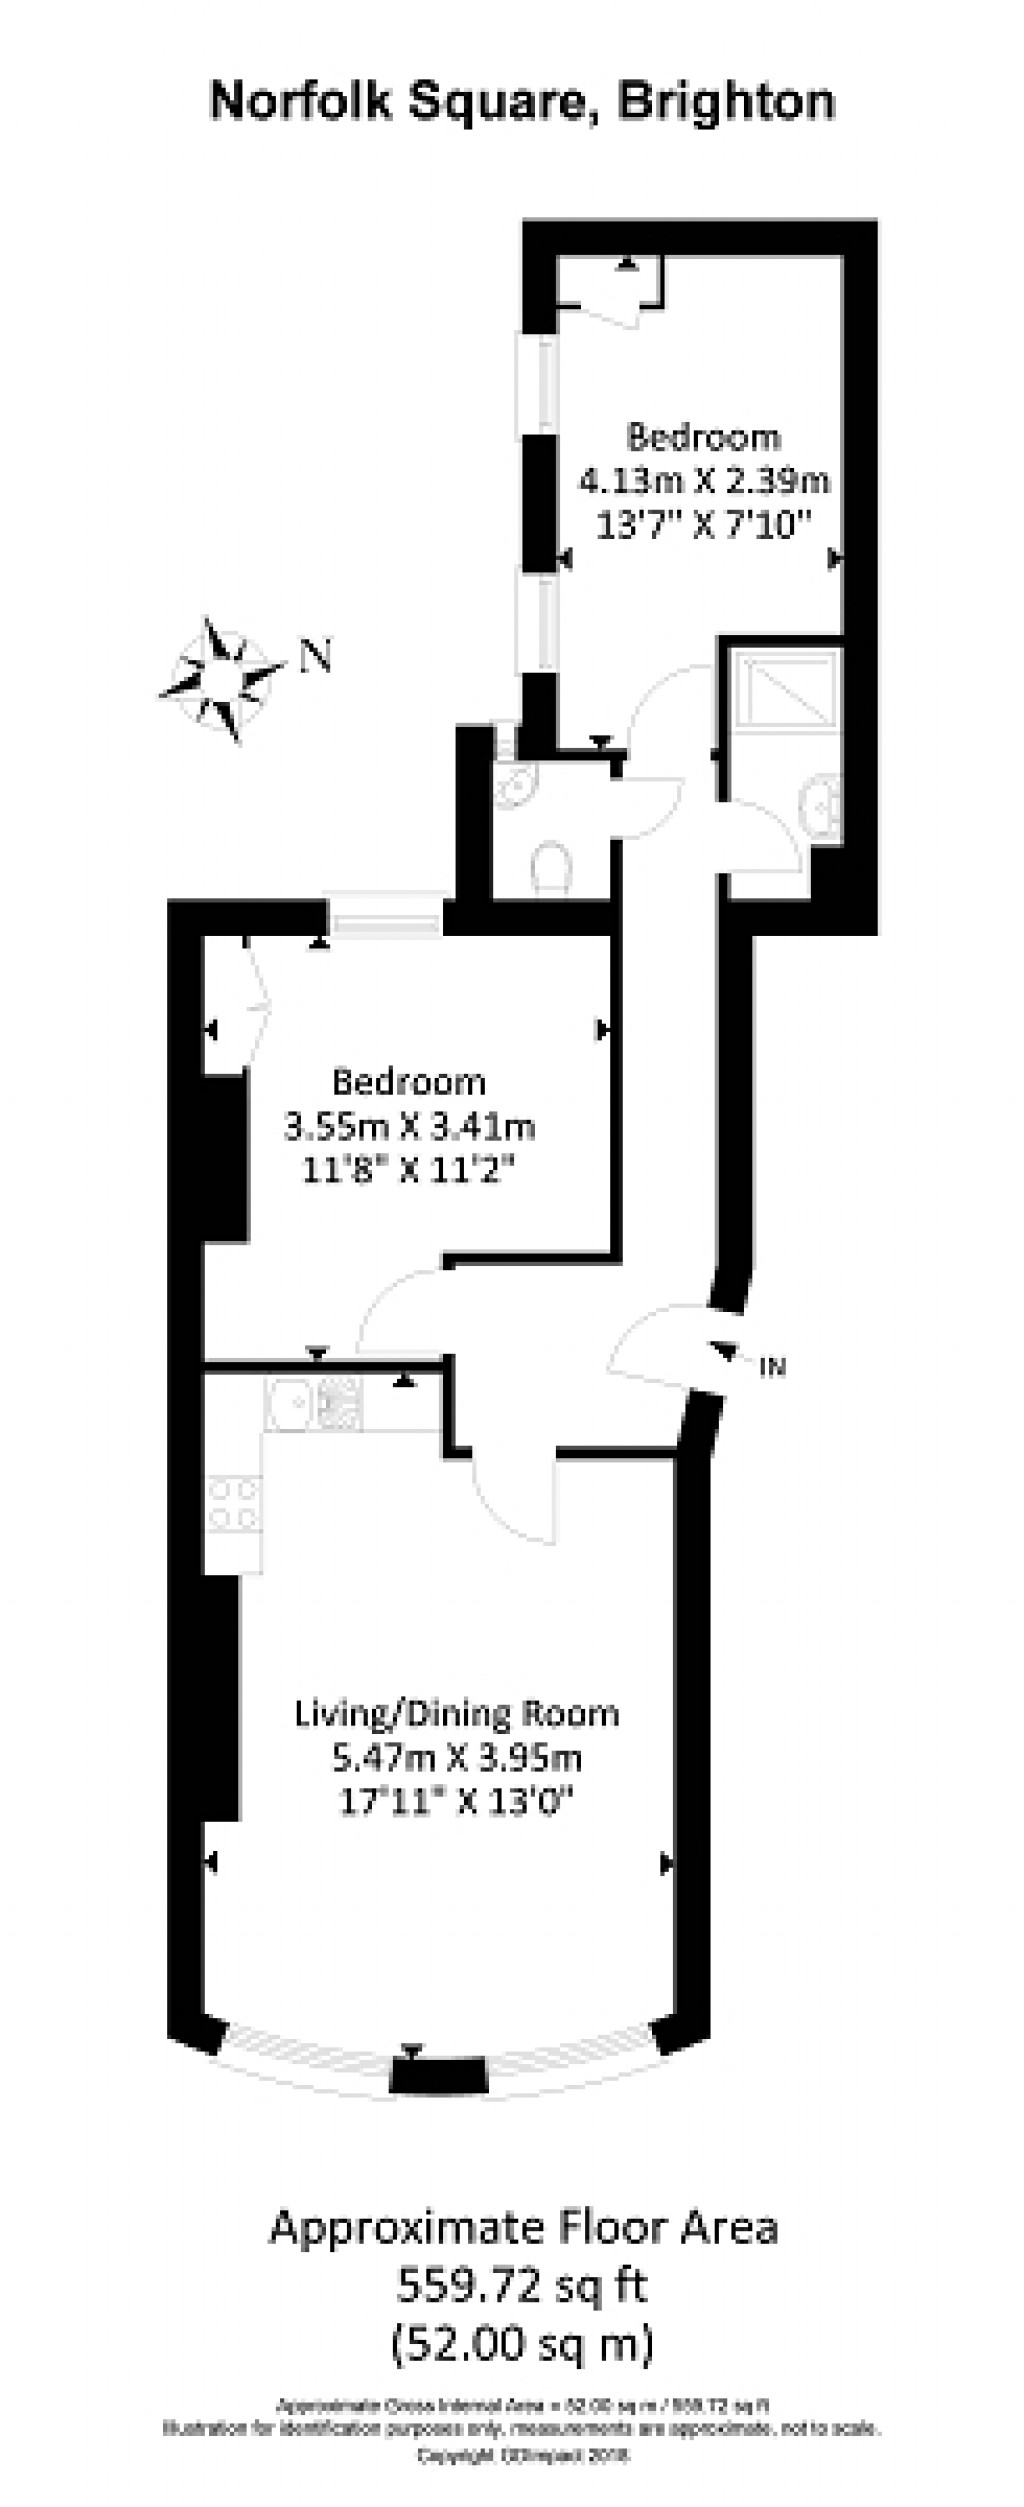 Floorplans For Norfolk Square, Brighton, BN1